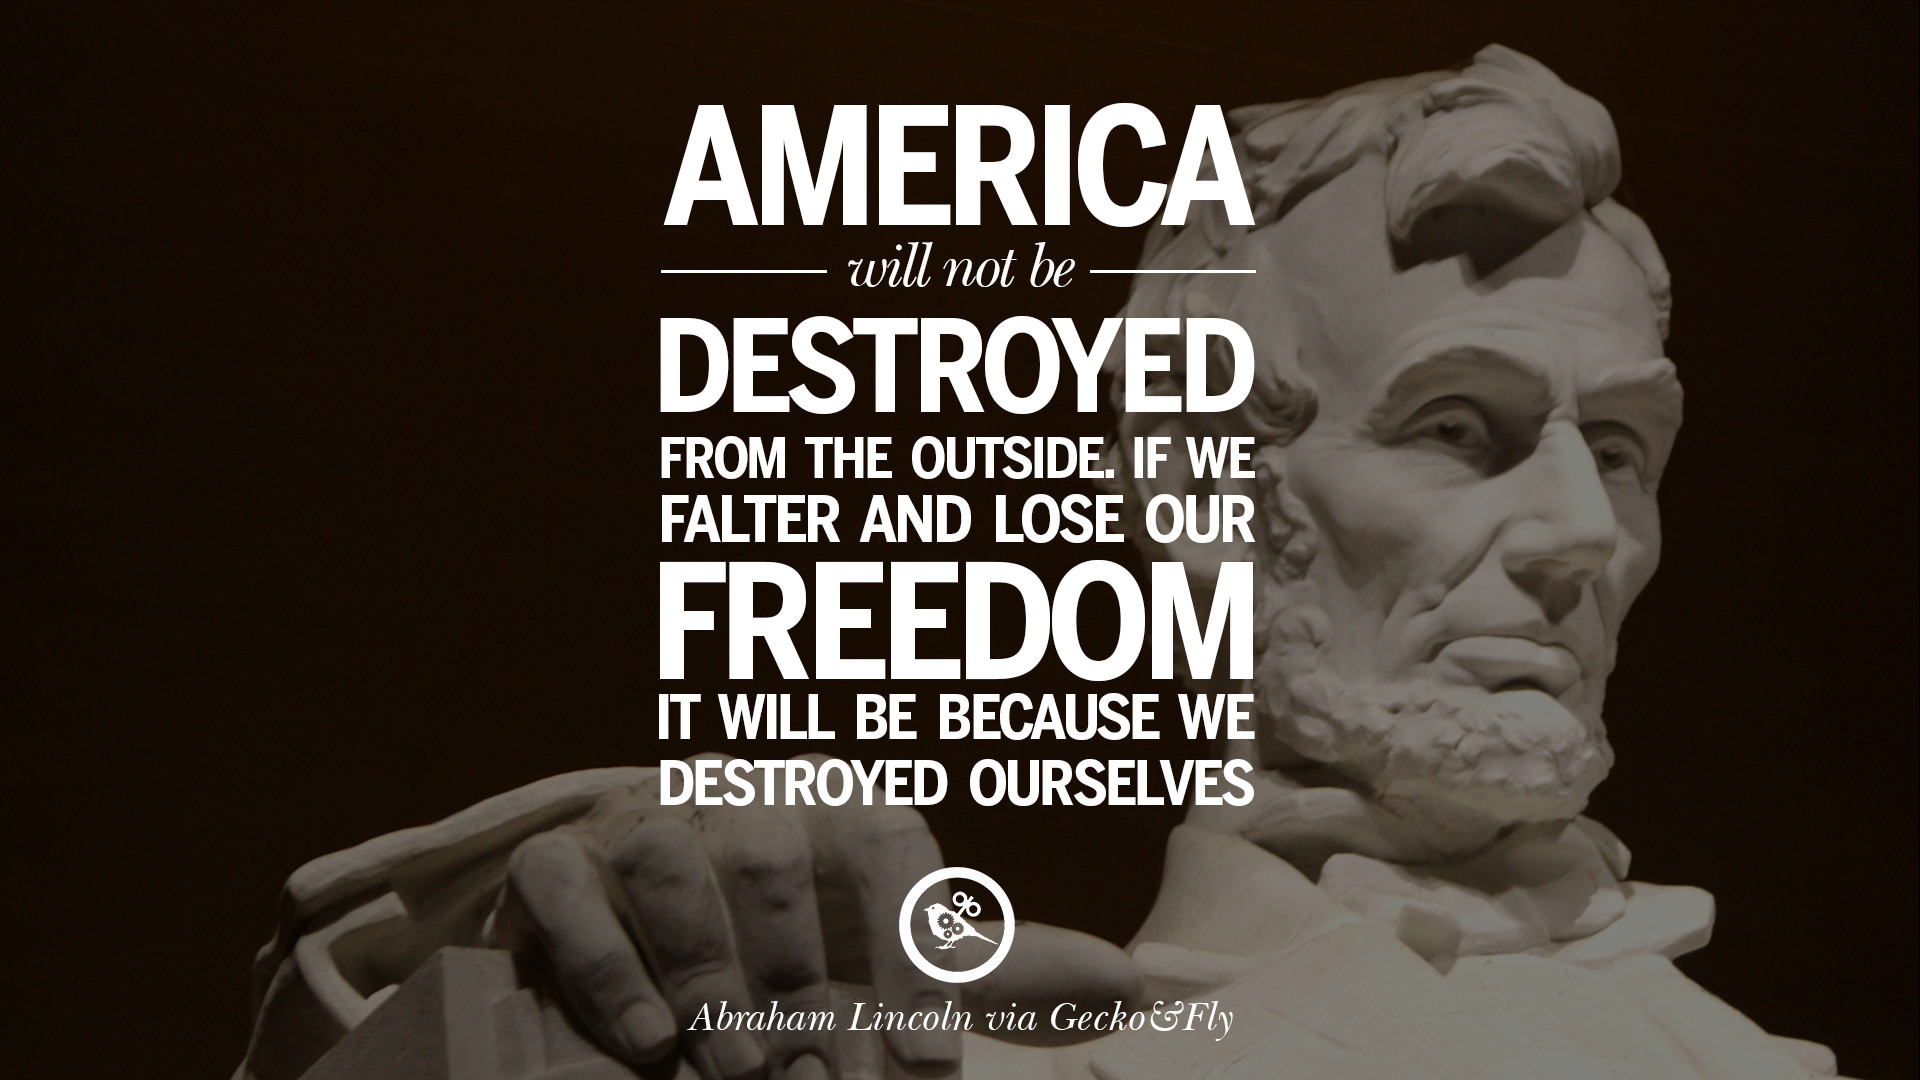 Slavery Quotes 20 Greatest Abraham Lincoln Quotes On Civil War Liberties